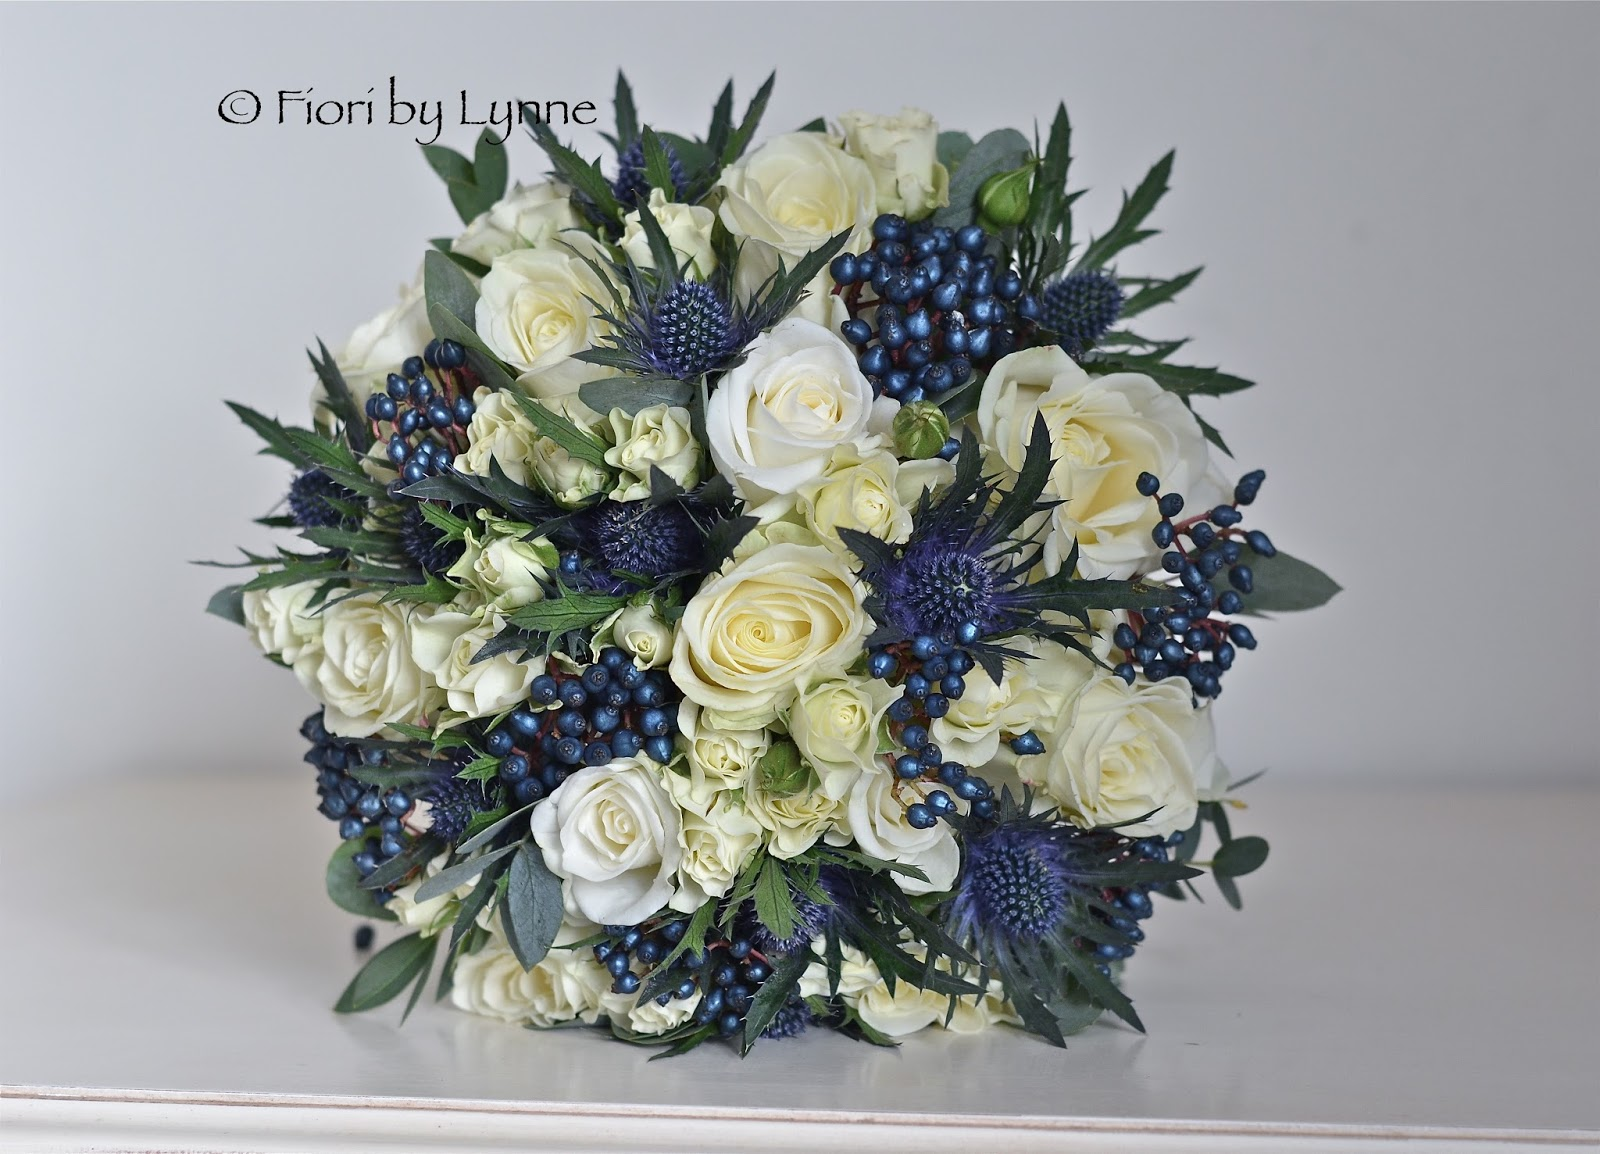 Wedding flowers blog ninas winter wedding flowers scottish ninas bouquet of rose thistle berry and eucalyptus in shades of ivory midnight and grey with eryngium representing the scottish thistle izmirmasajfo